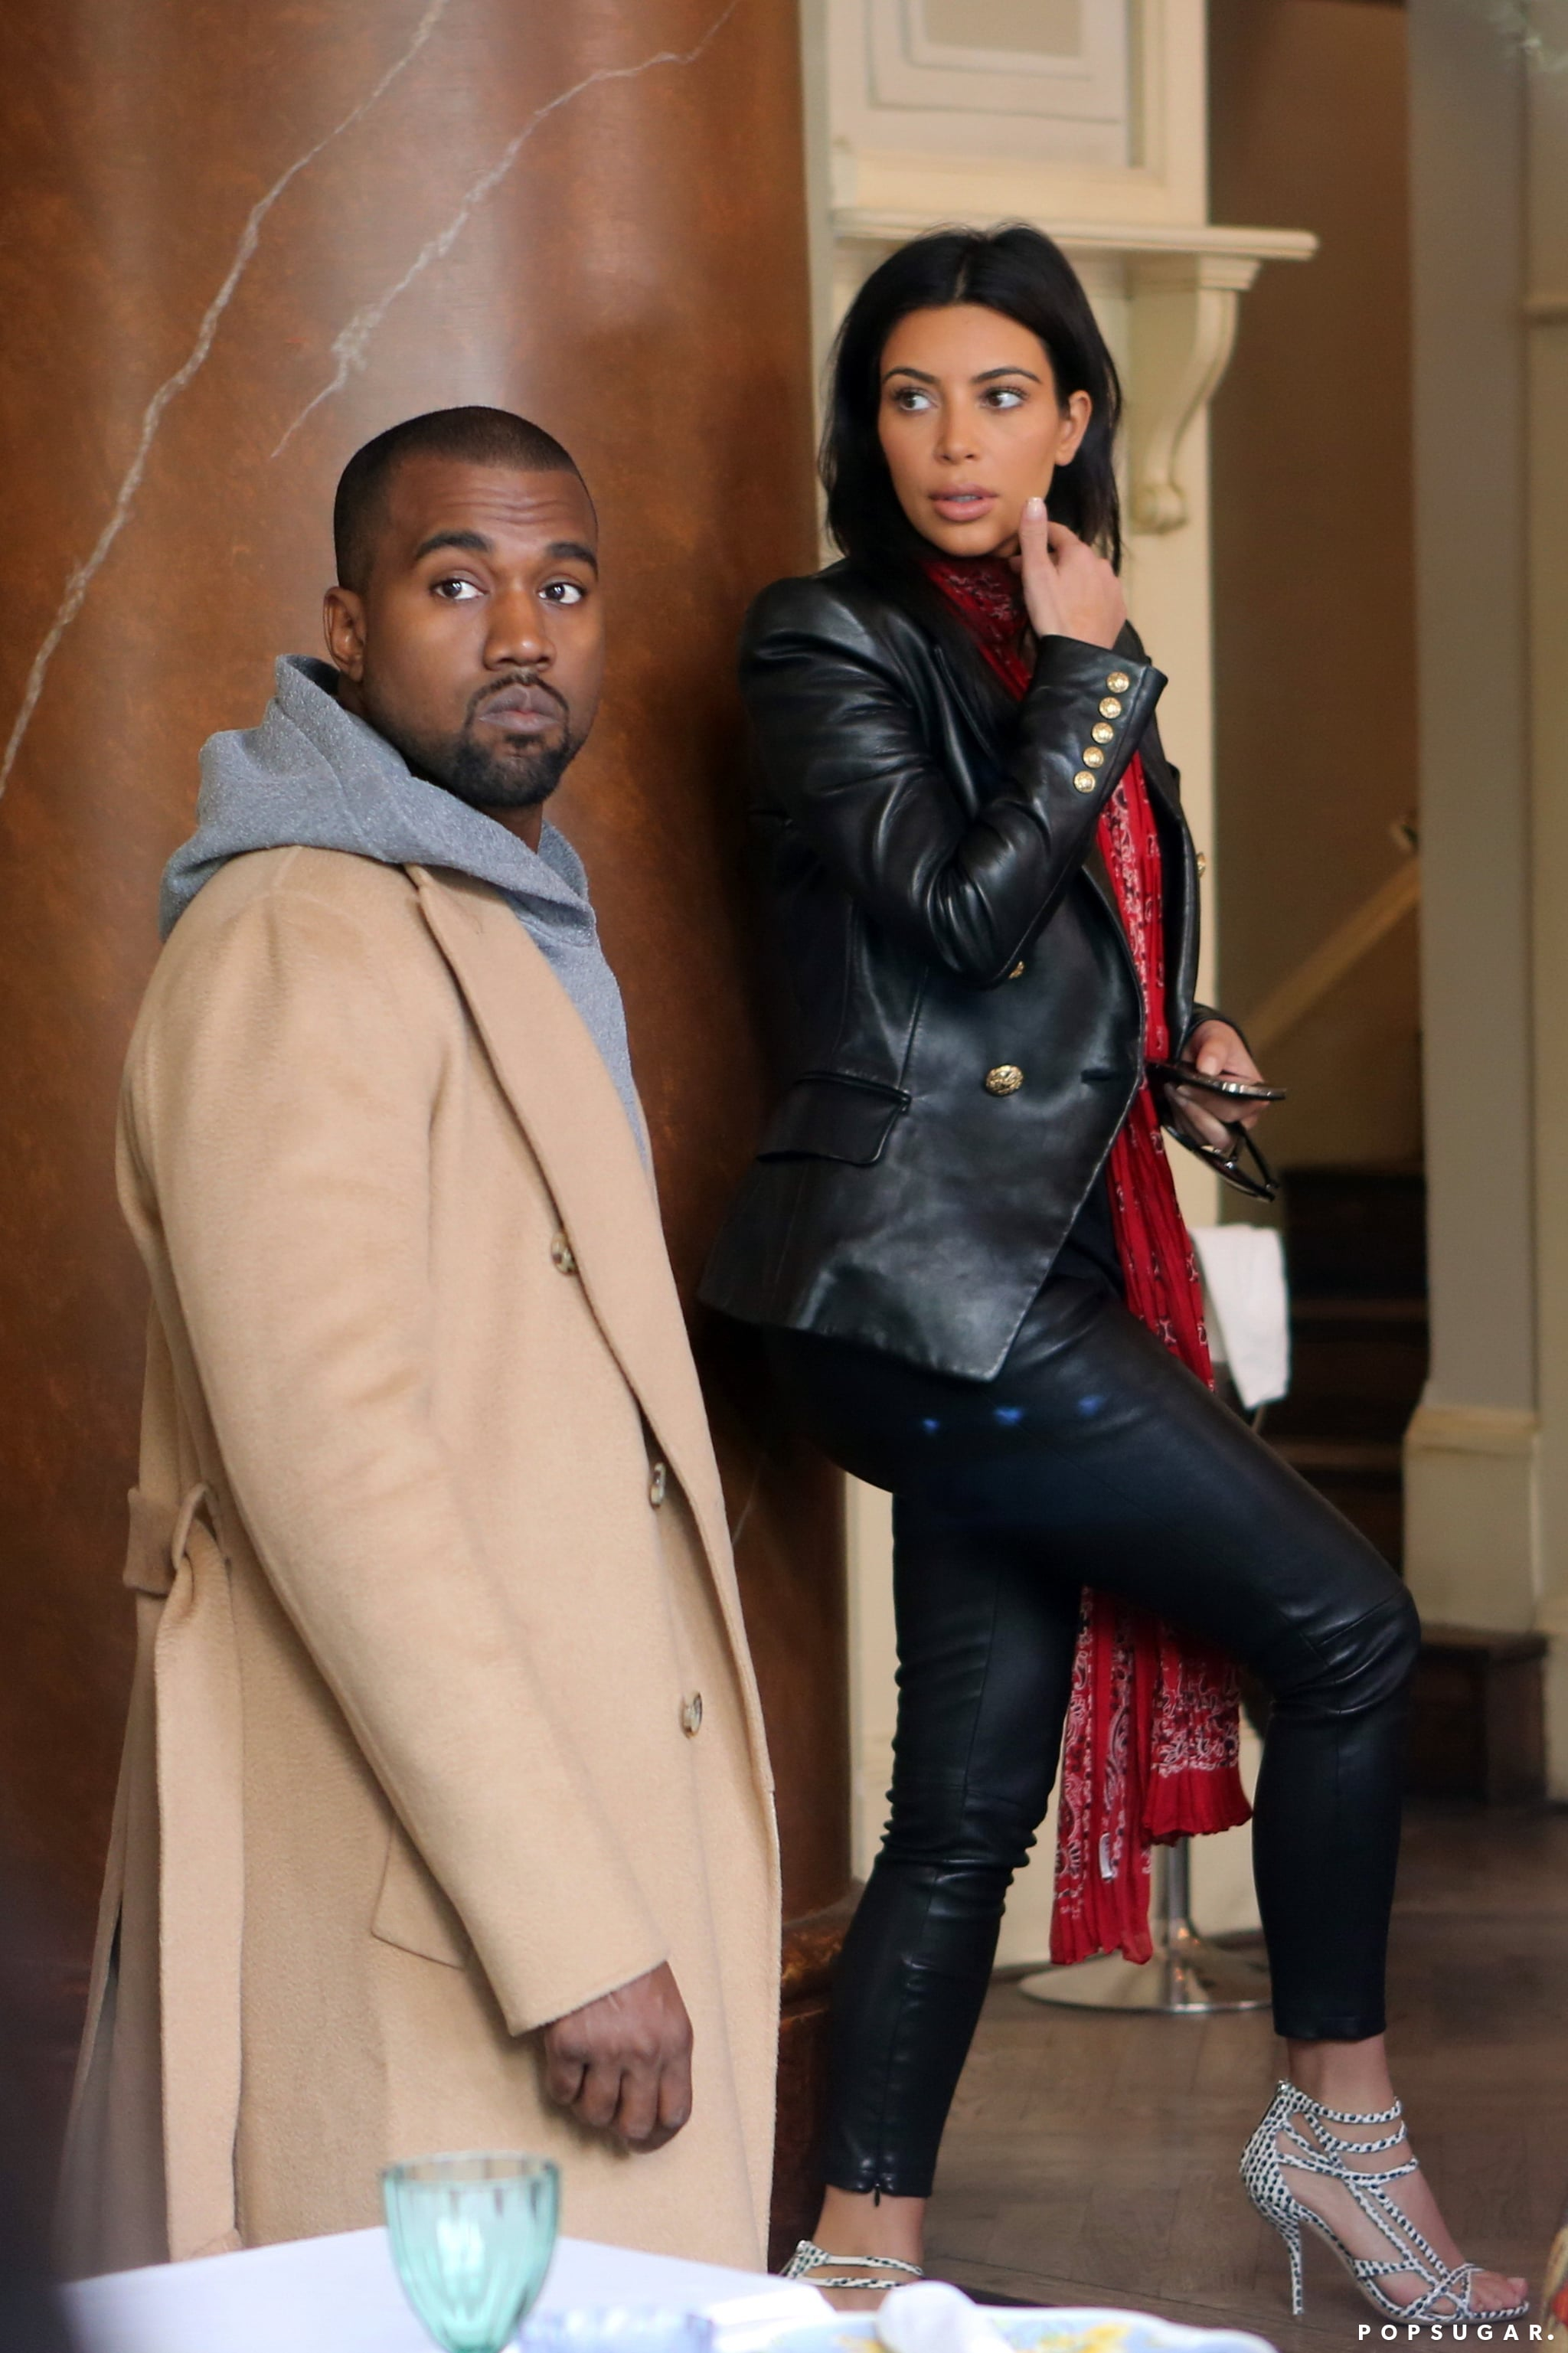 Kim and Kanye's Honeymoon Is a Lot More Low-Key Than Their Wedding